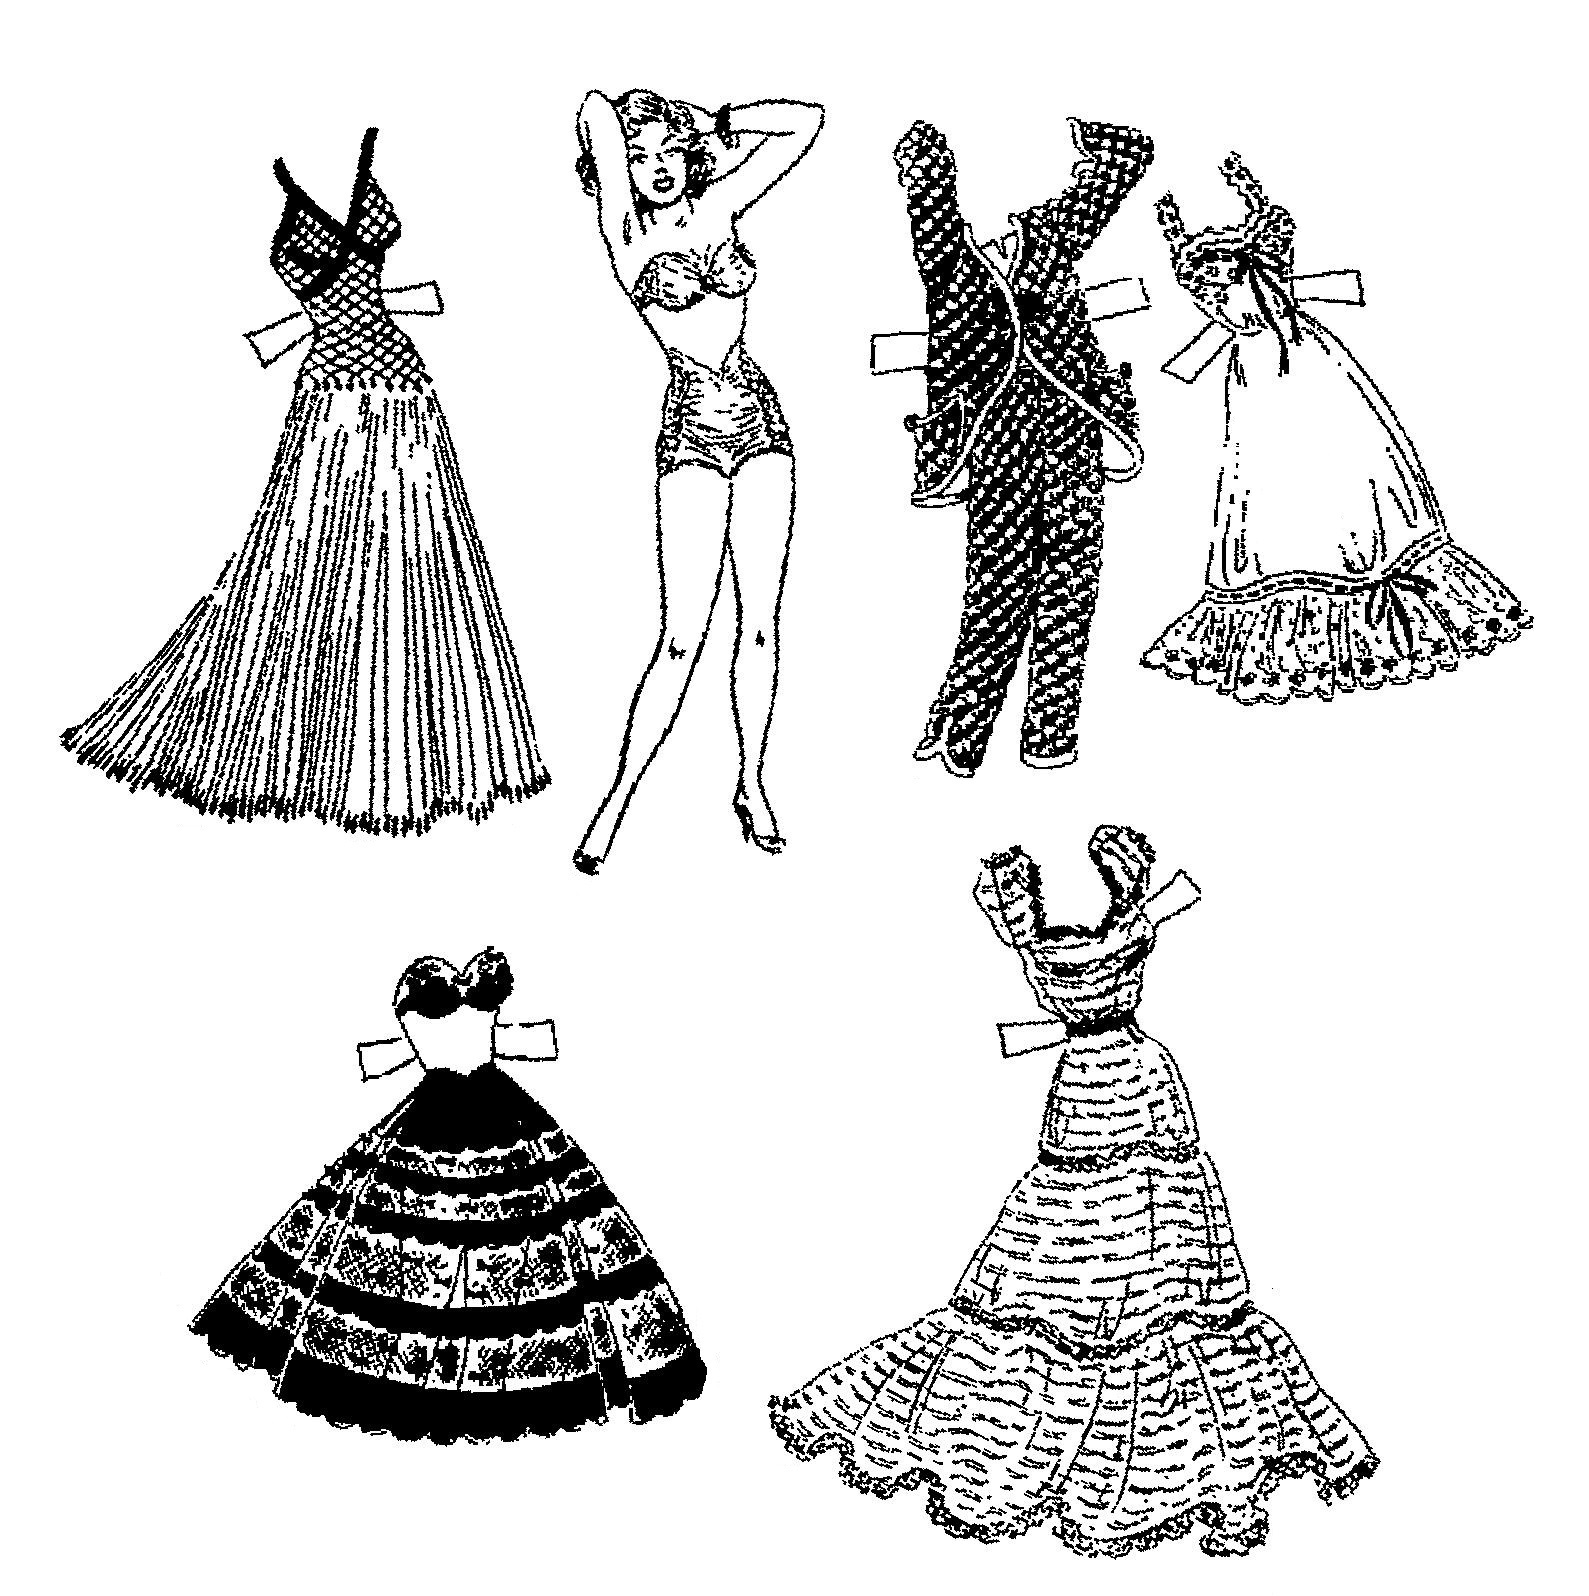 Mostly Paper Dolls Too!: BRENDA STARR Comic Strip Paper Doll